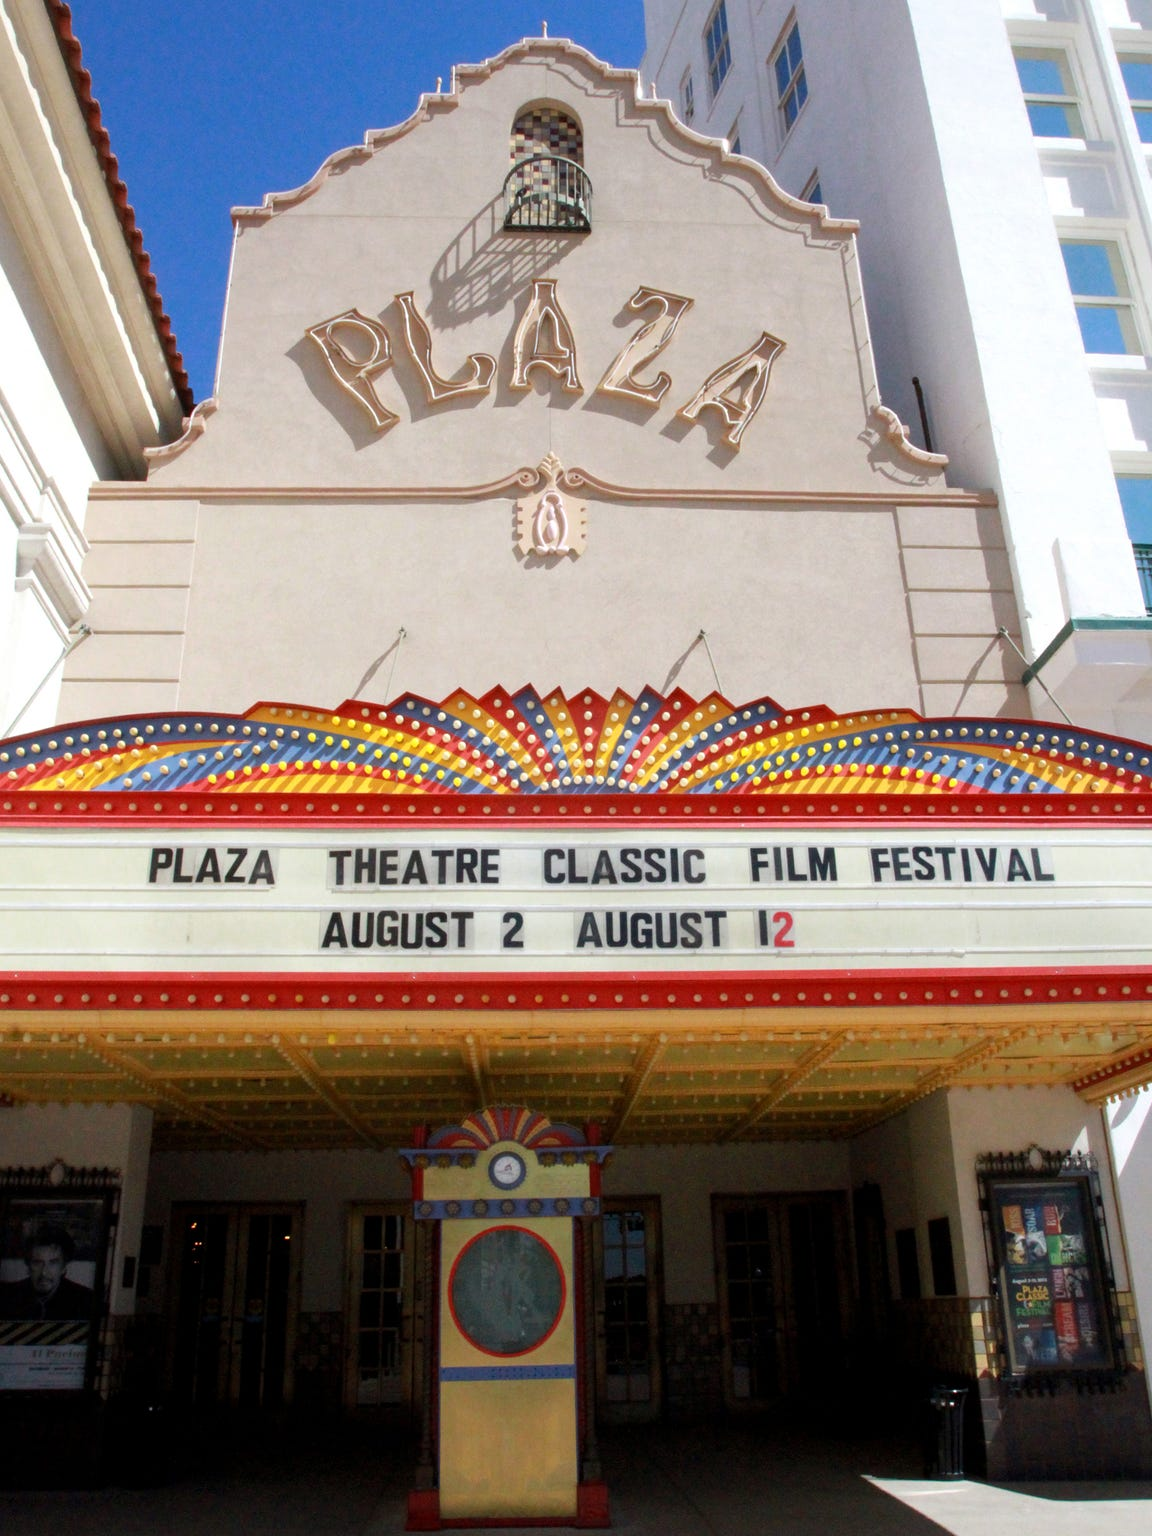 The Plaza Theatre